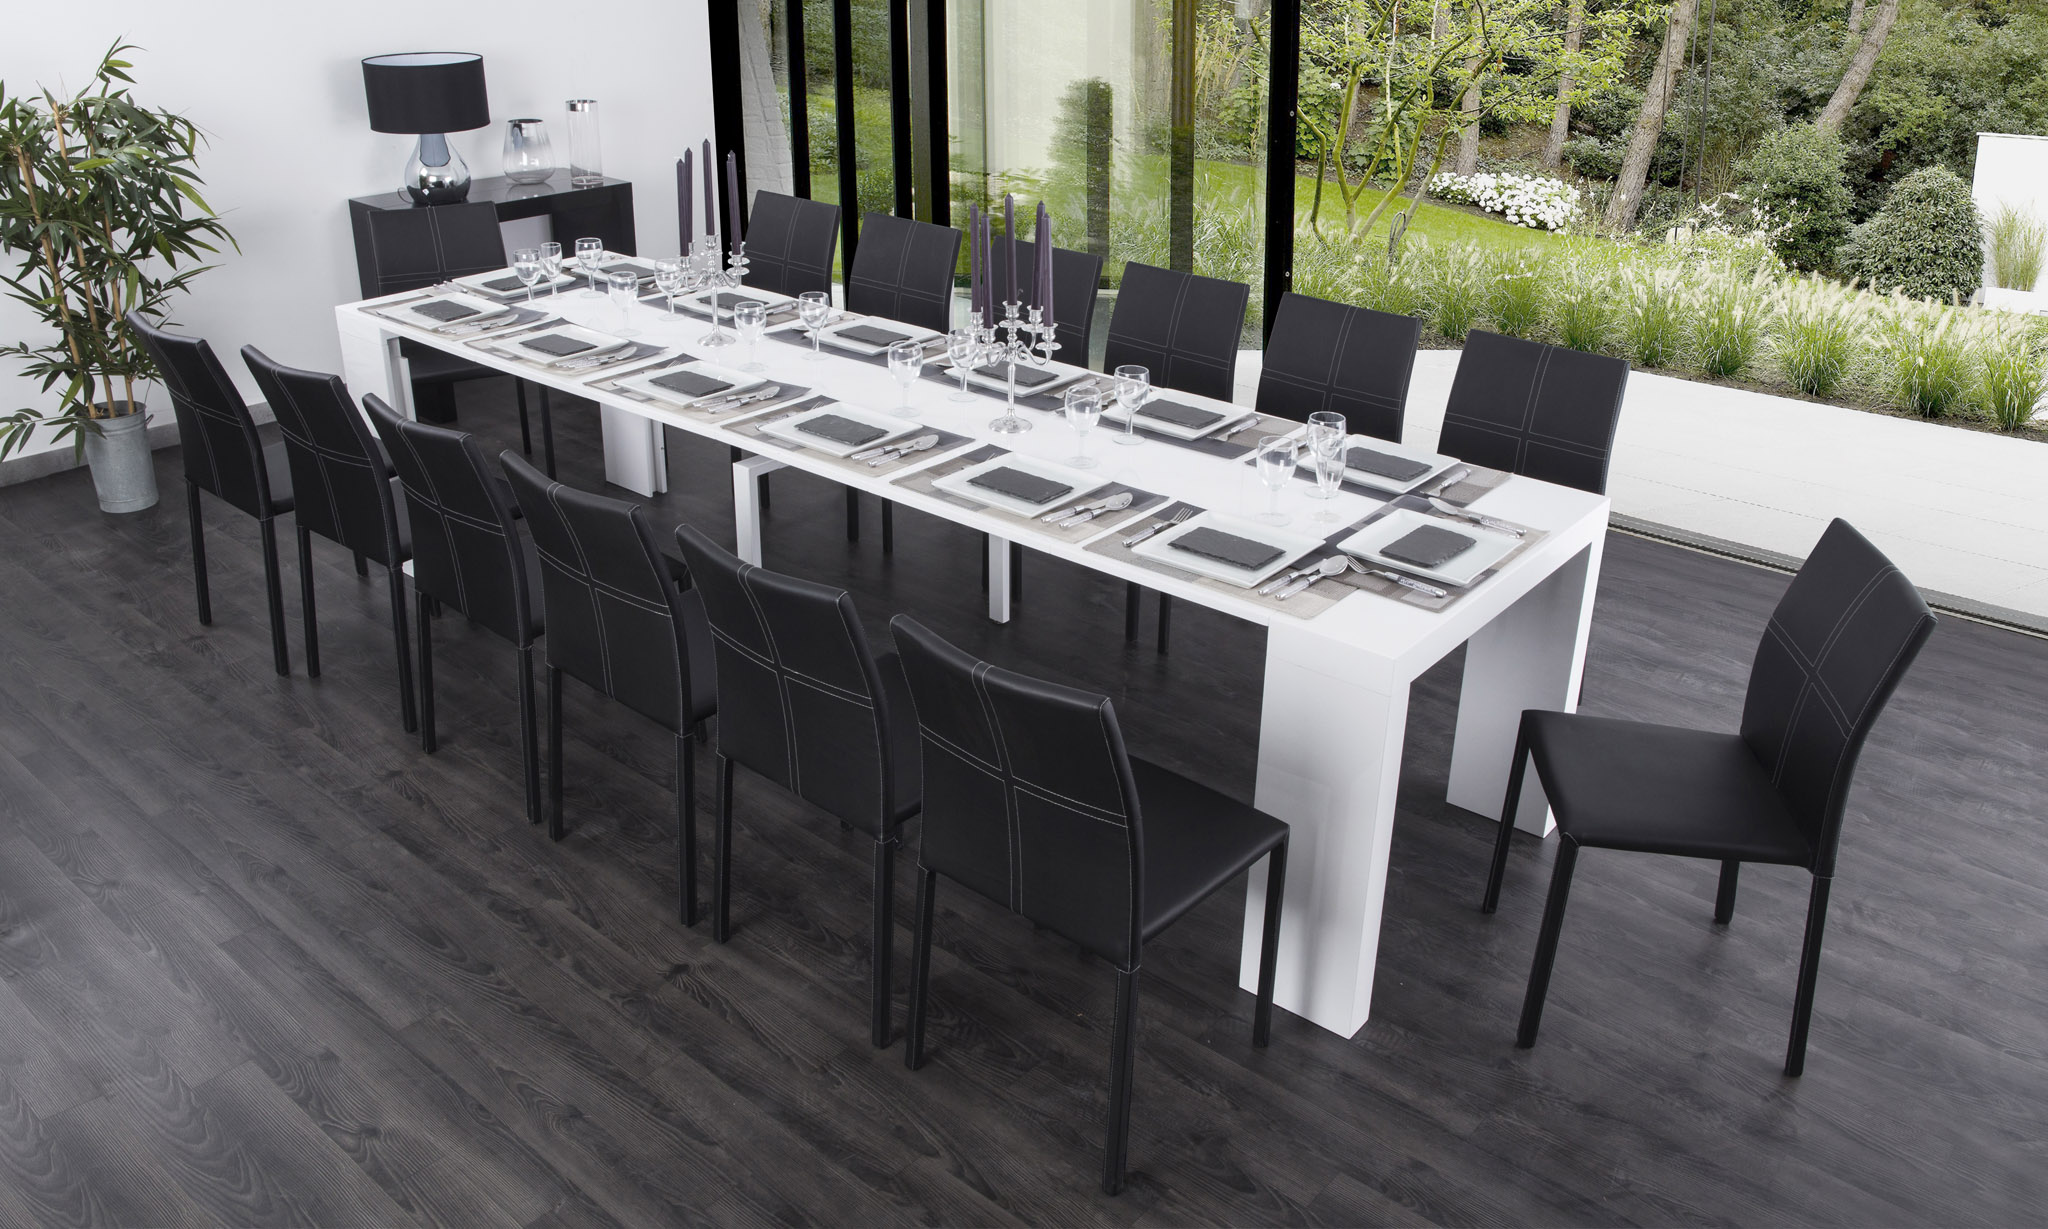 Console extensible groupon Table blanche extensible 12 personnes